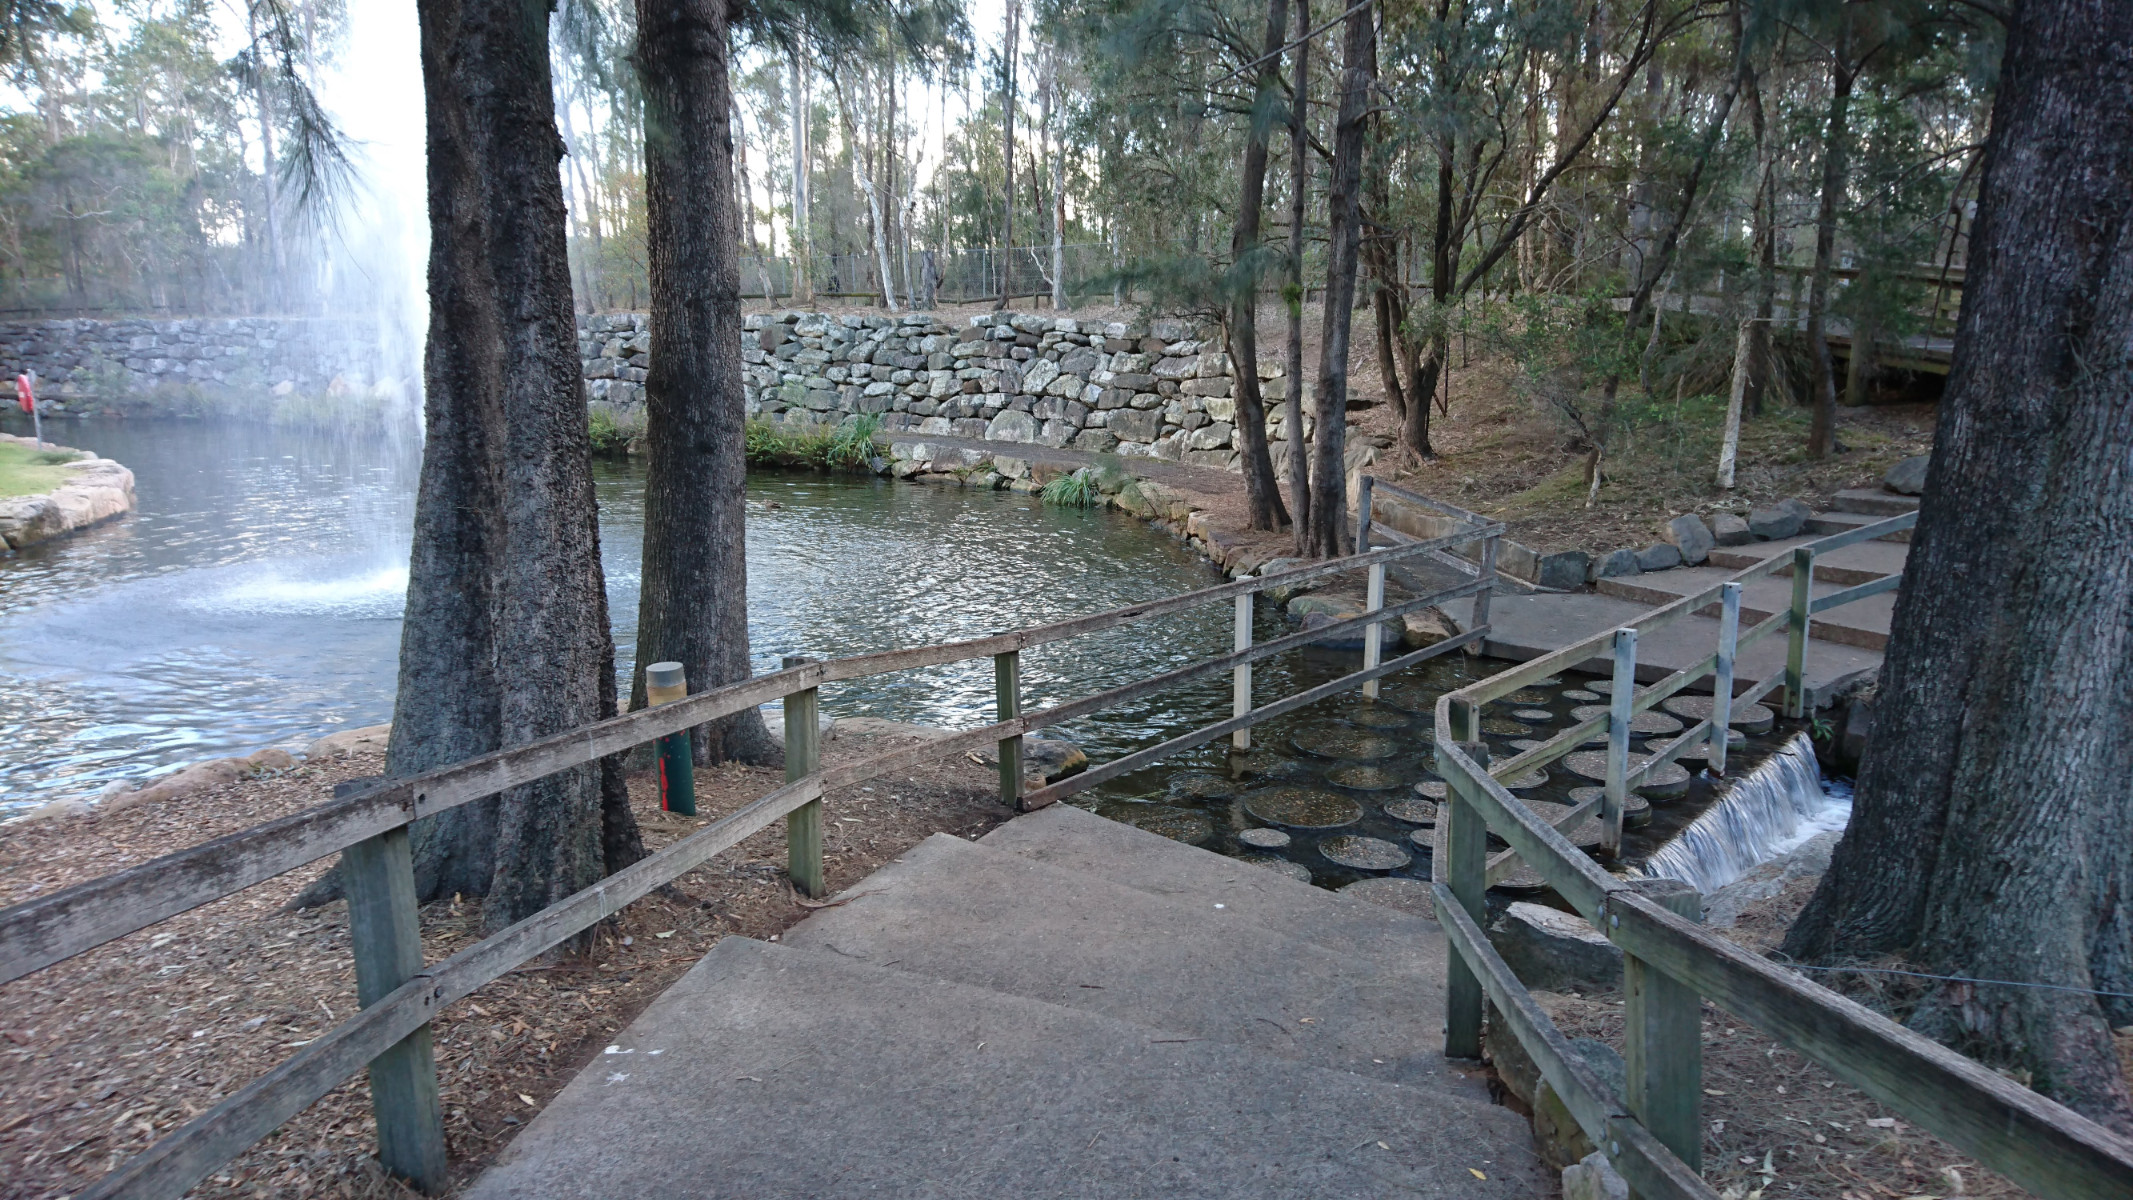 stepping stones to get across to the viewing platform area